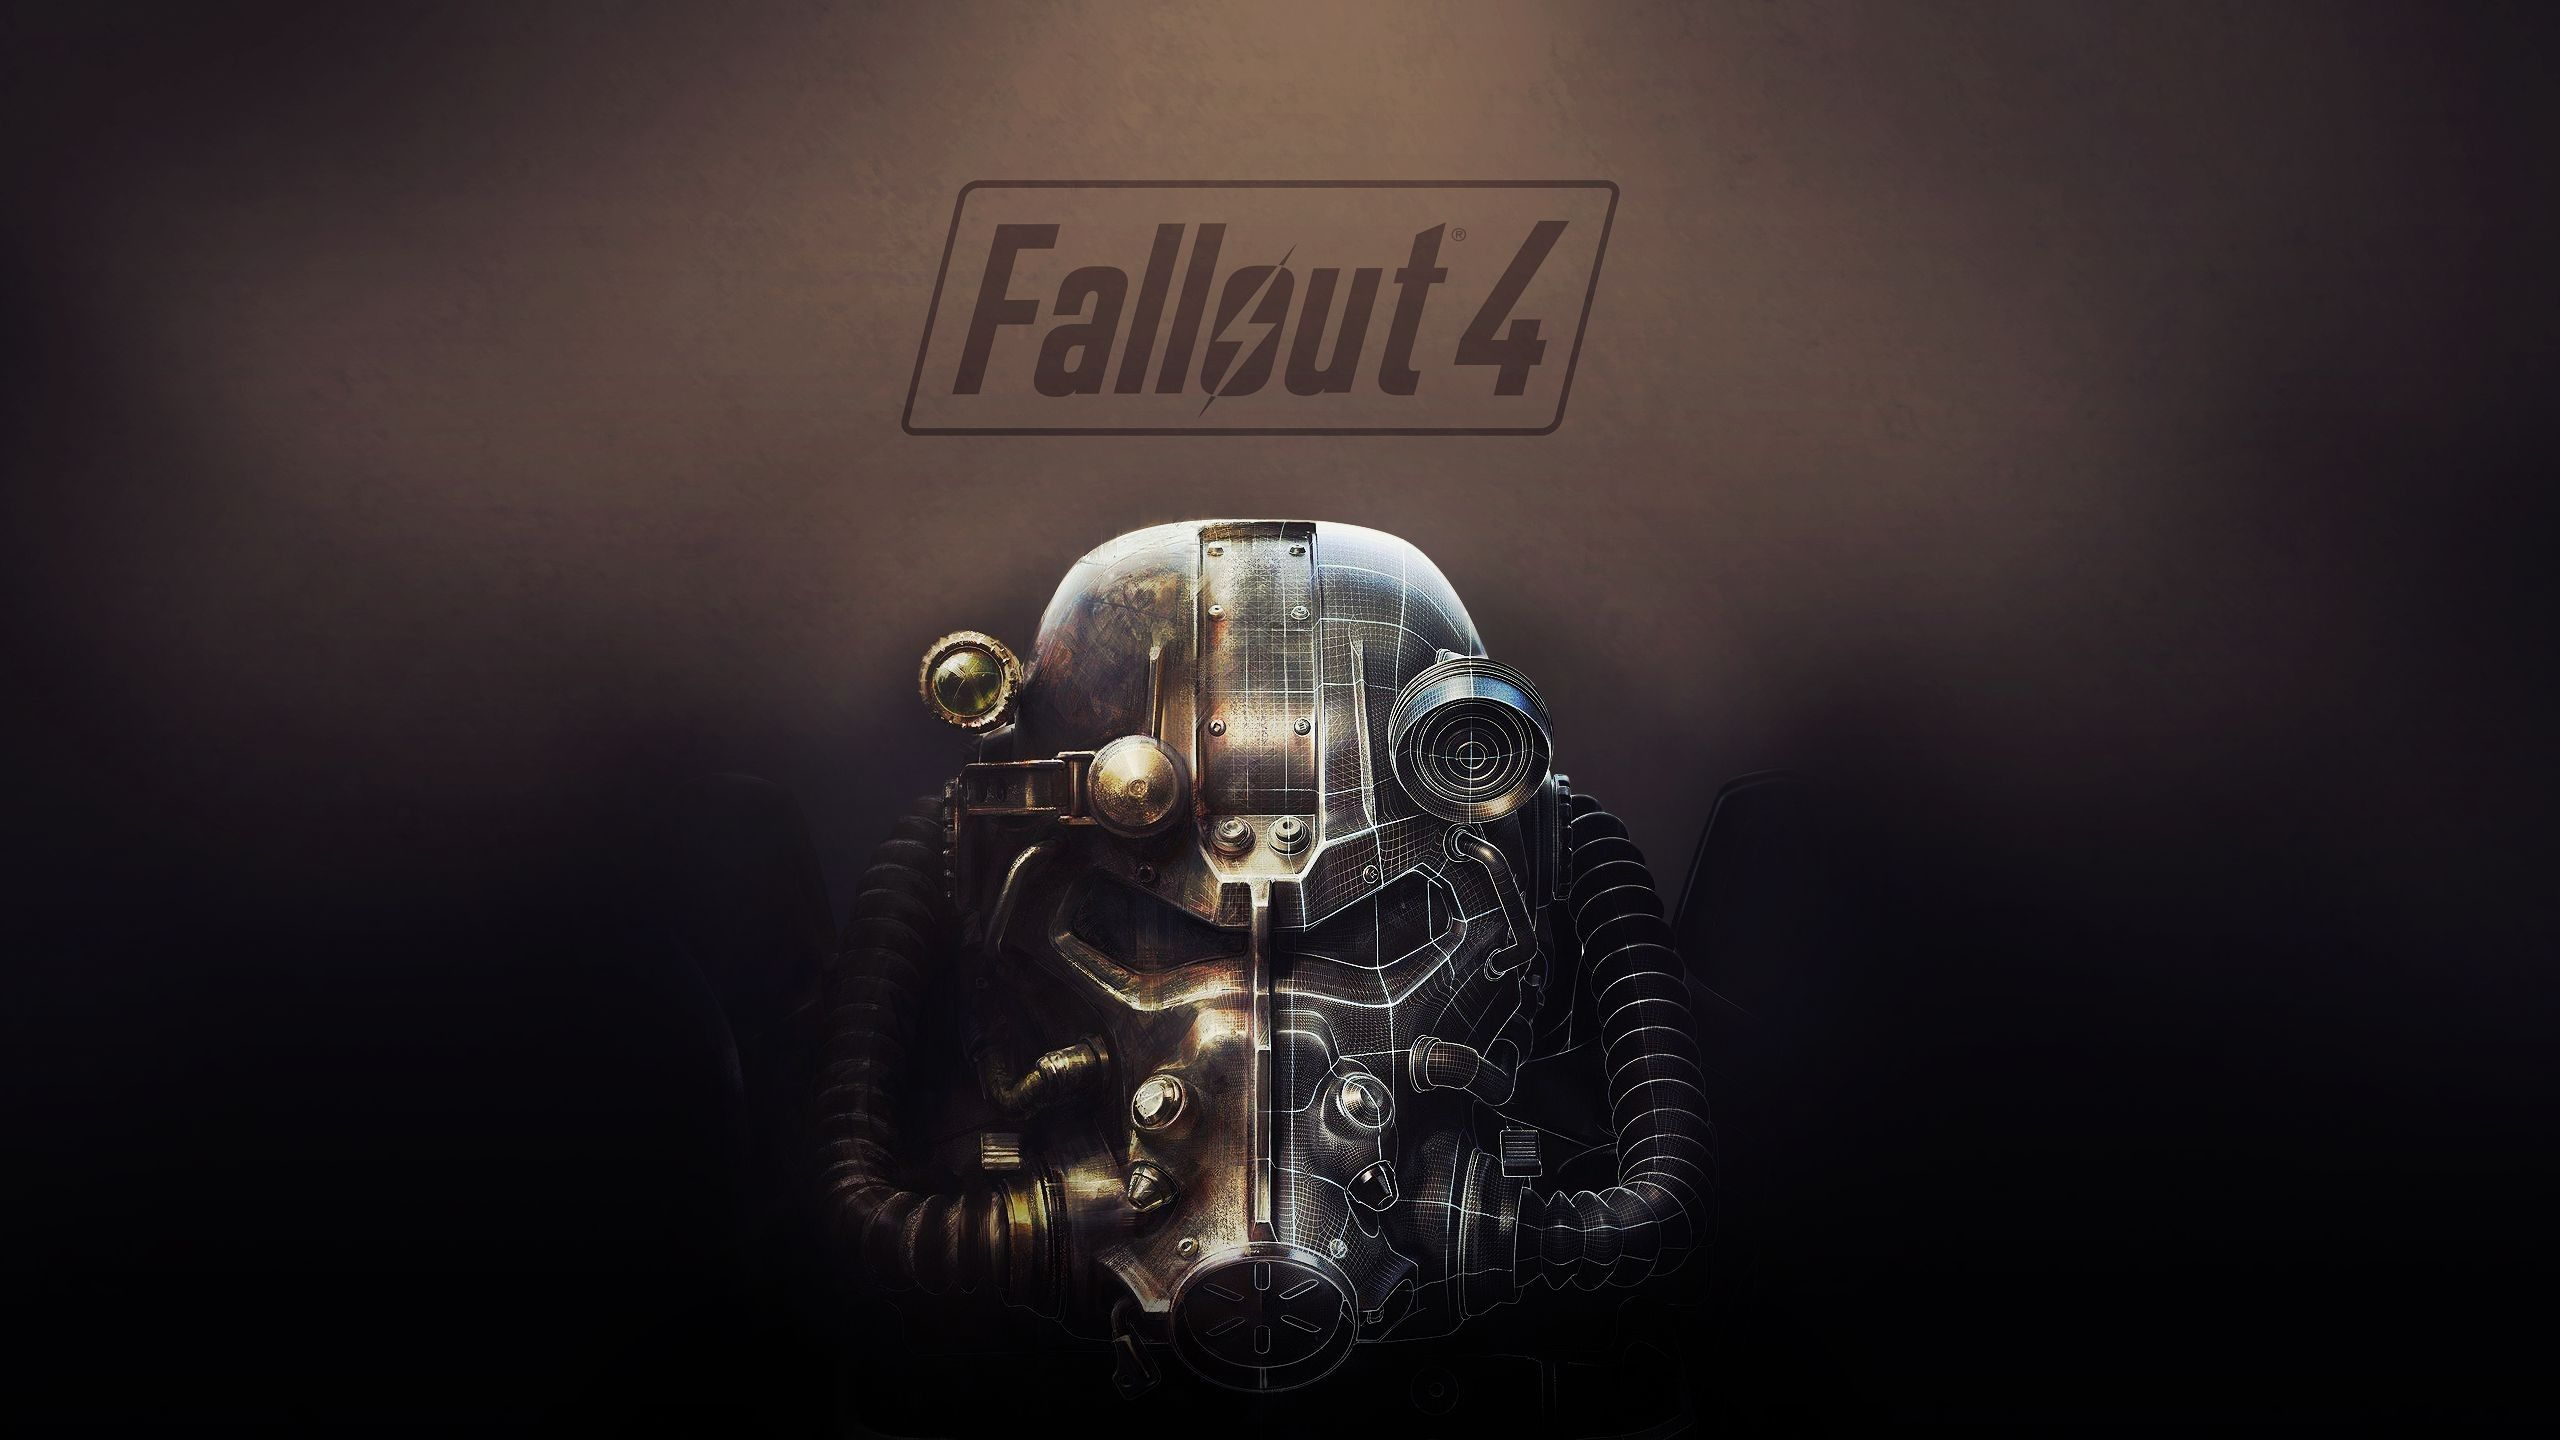 welcome home fallout 4 top reddit wallpapers pinterest fallout and wallpaper